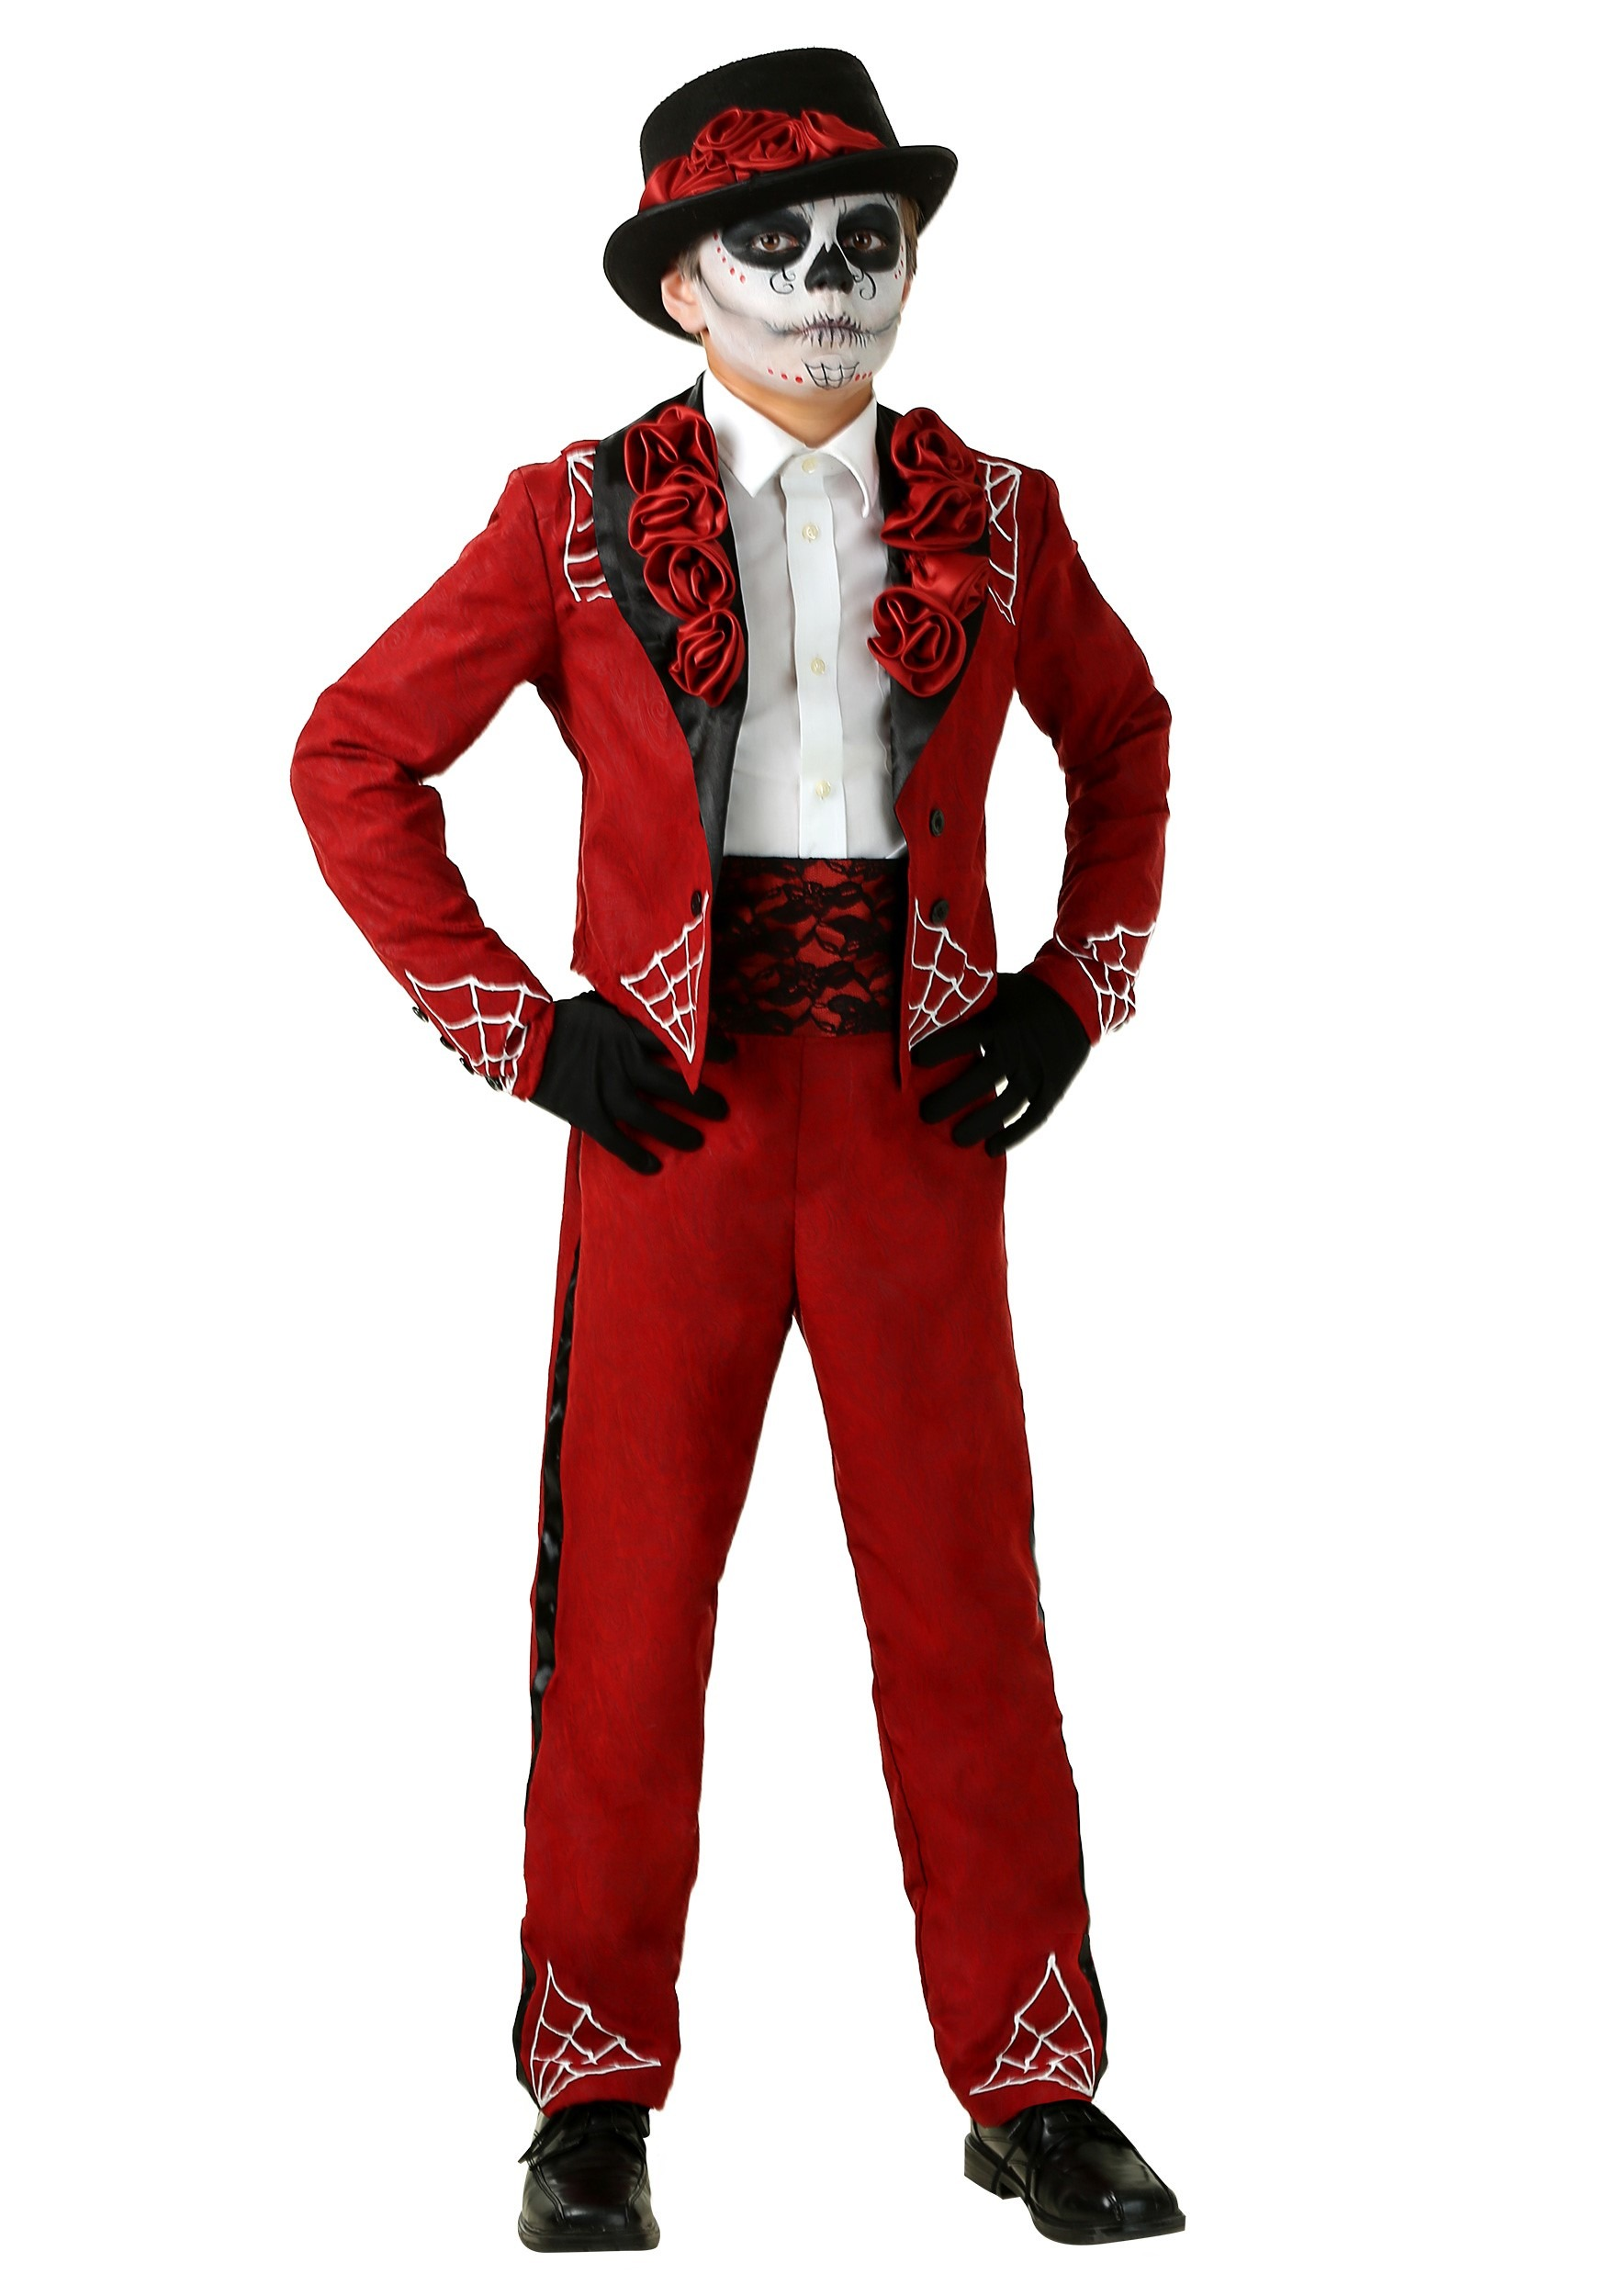 Boyu0027s Day of the Dead Costume  sc 1 st  Halloween Costumes : dead mariachi costume  - Germanpascual.Com